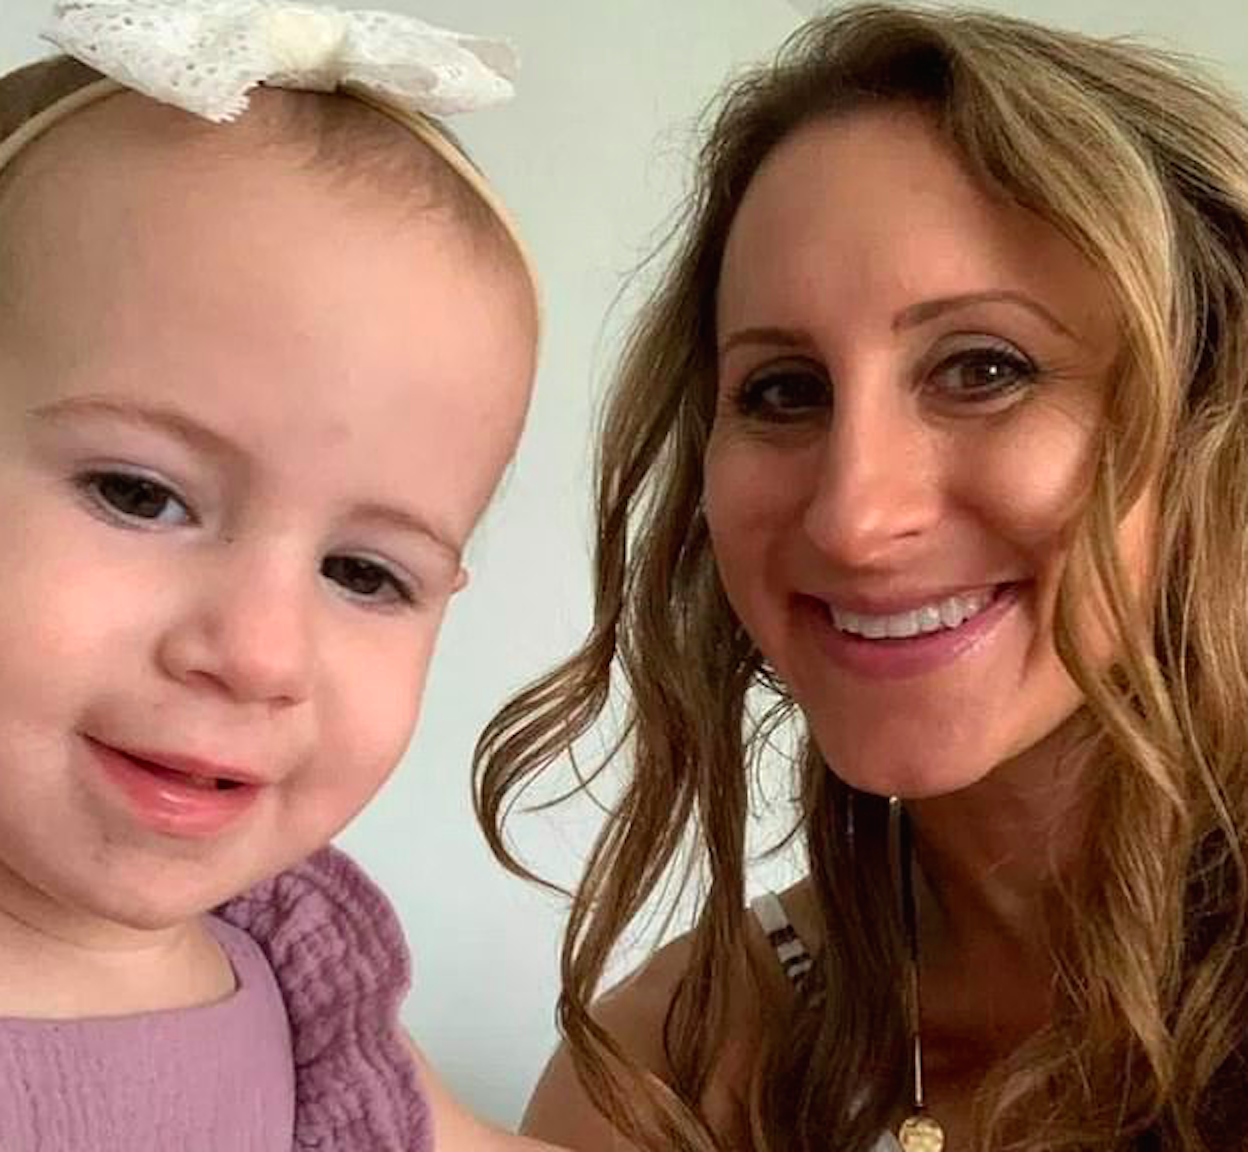 Chloe Wiegand pictured with her mother, Kimberly Schultz Wiegand (Picture: Facebook)